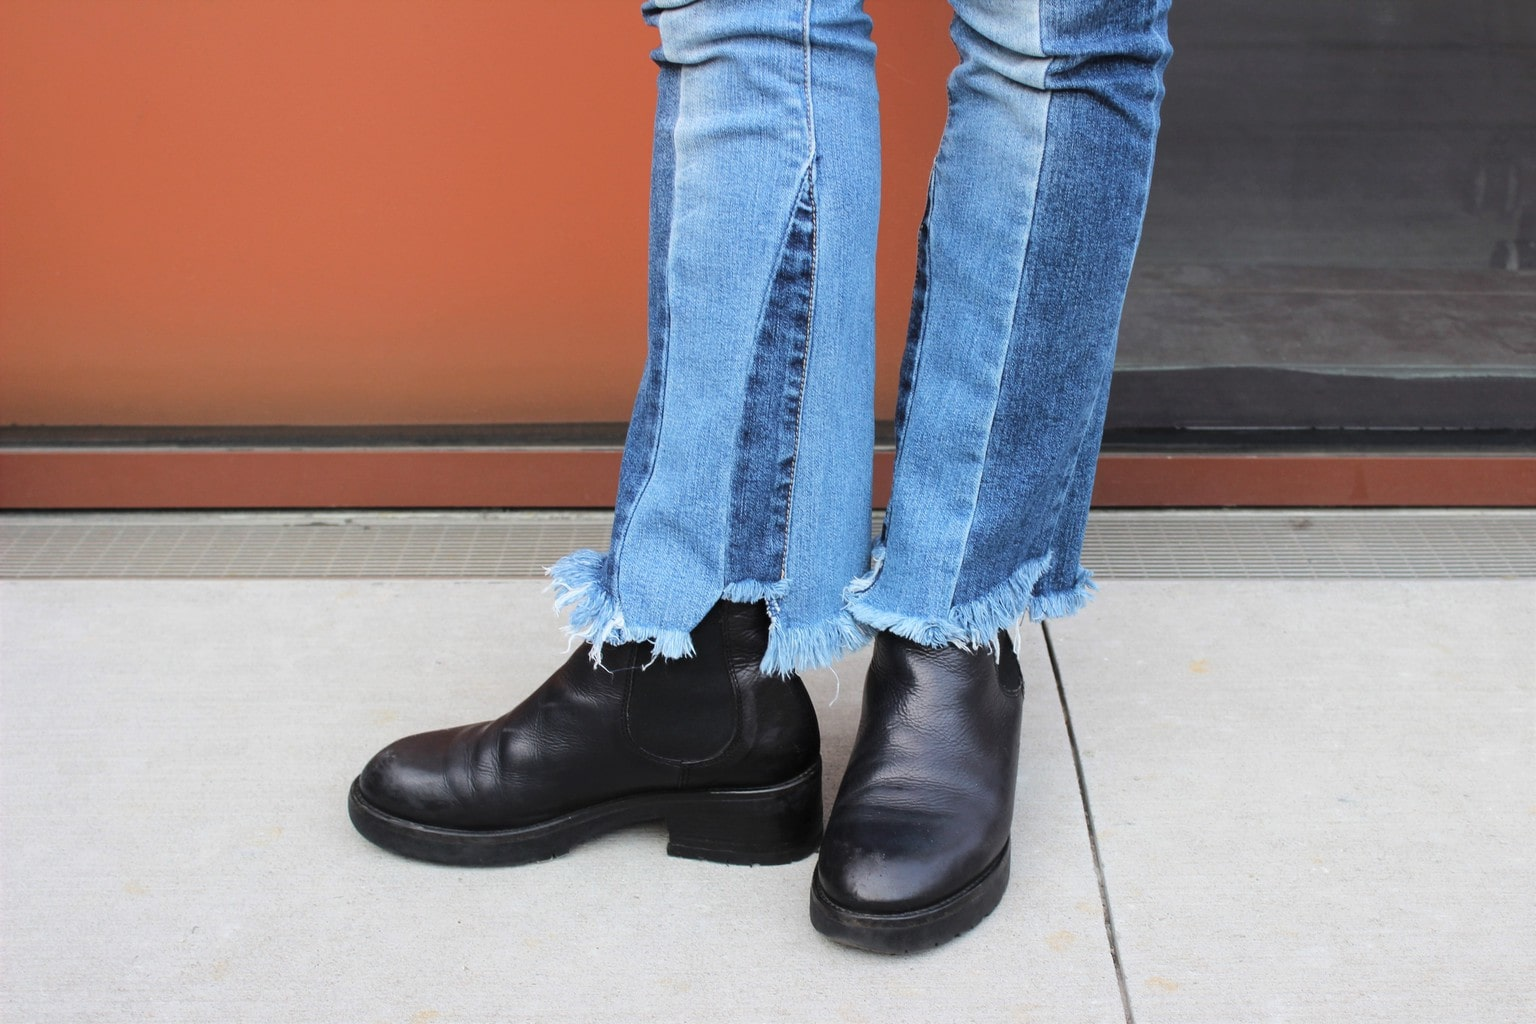 Raw-edge patchwork denim jeans with chunky black boots.